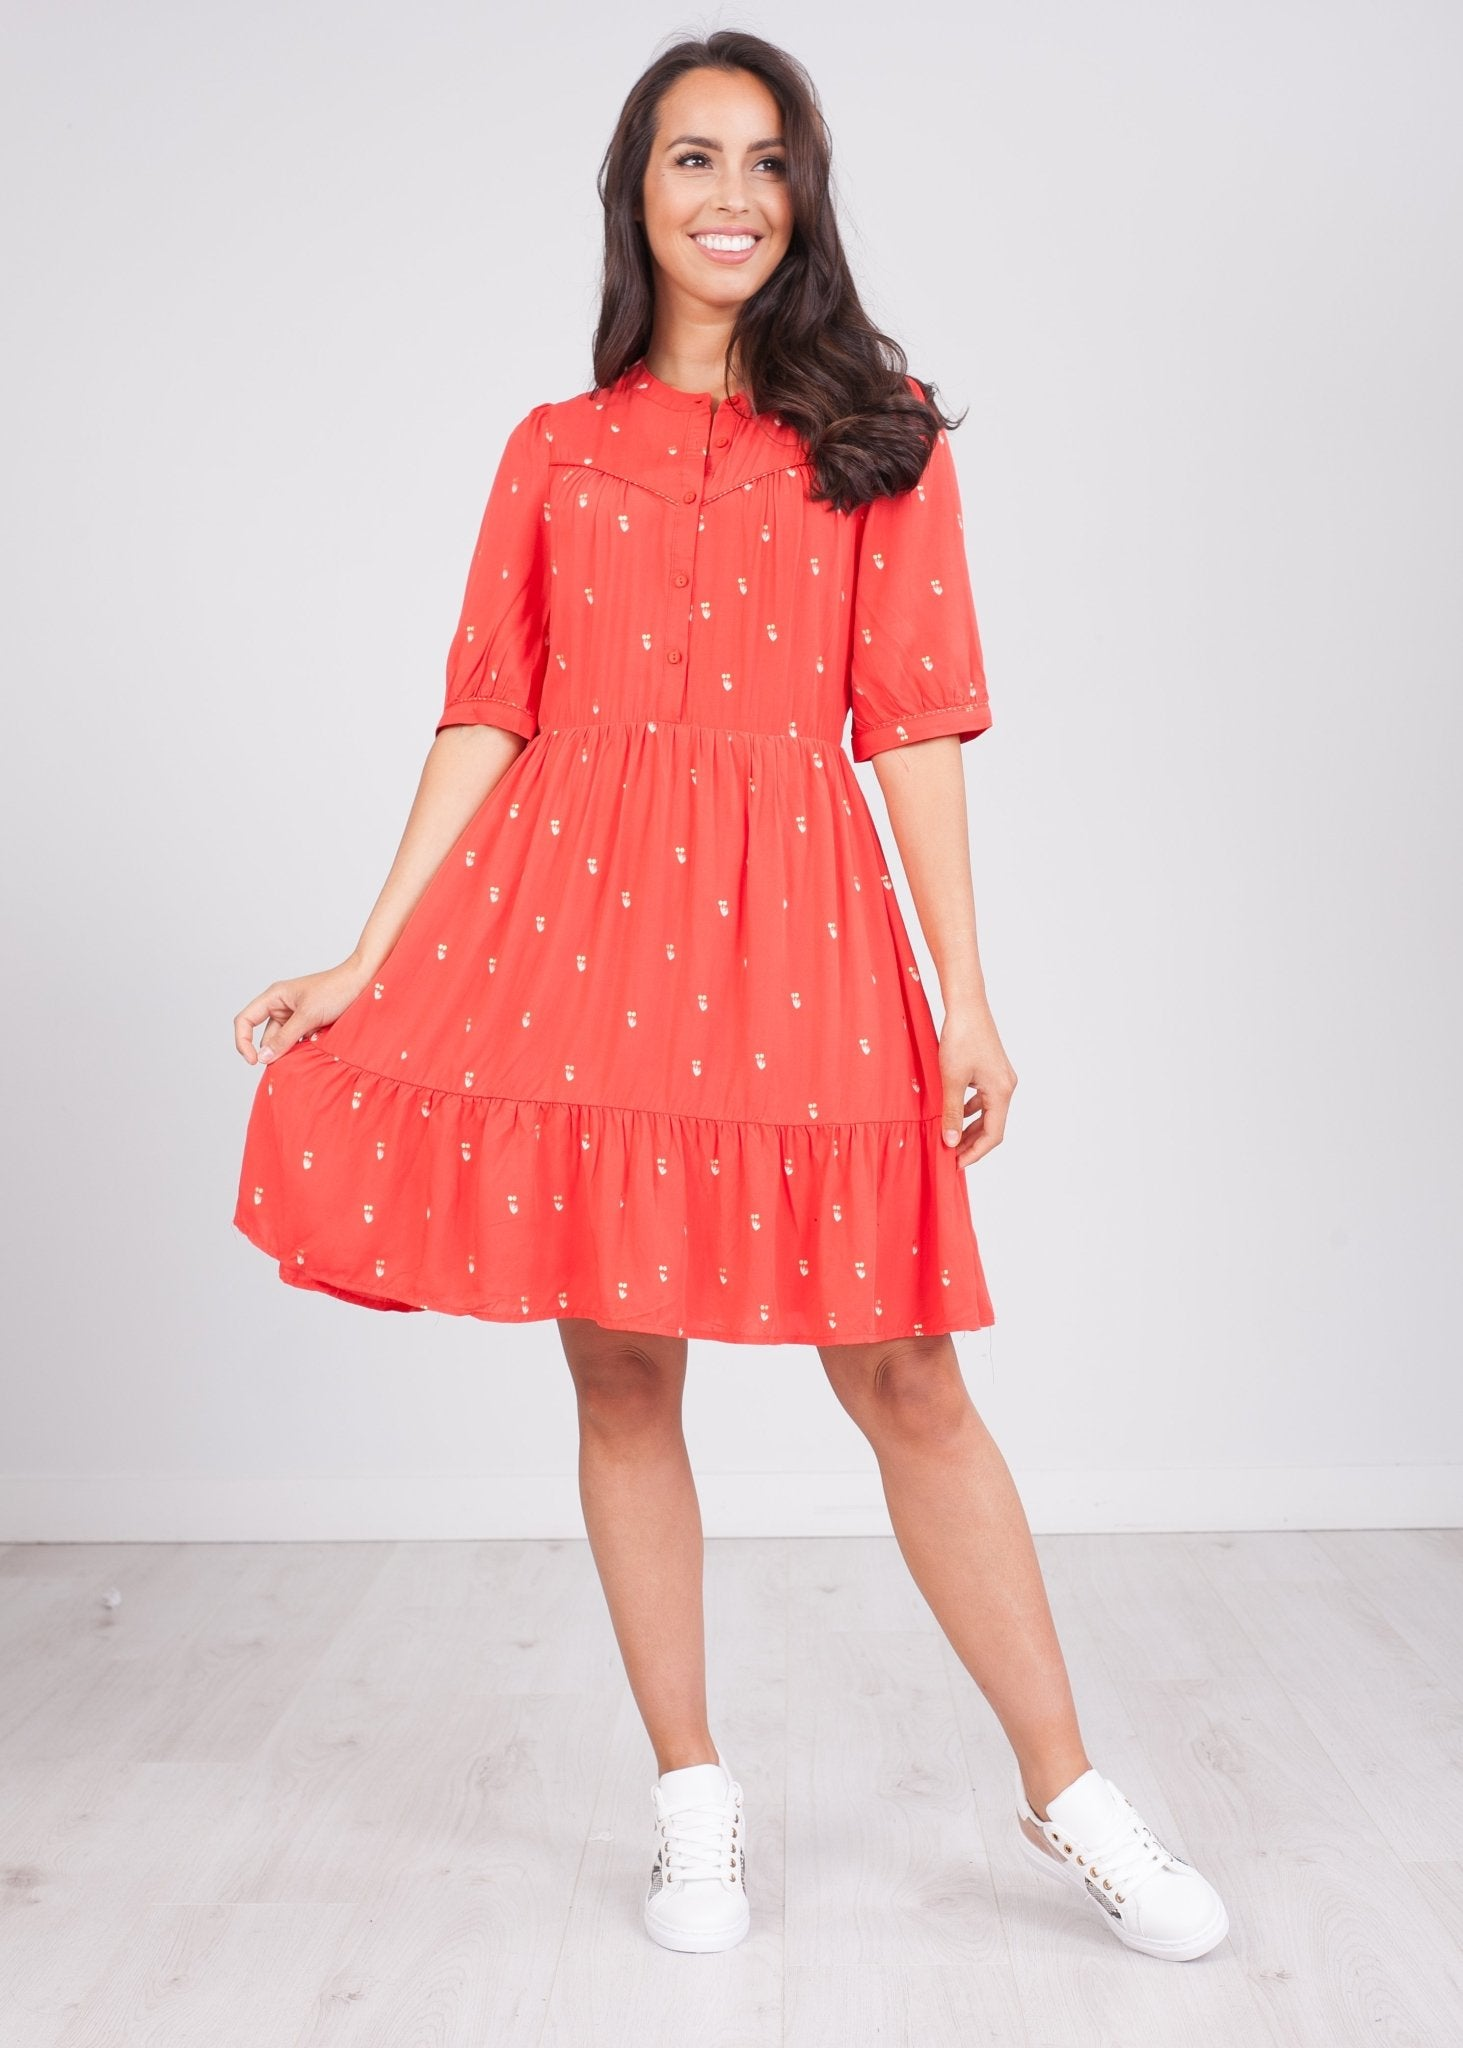 Cherie Red Printed Dress - The Walk in Wardrobe